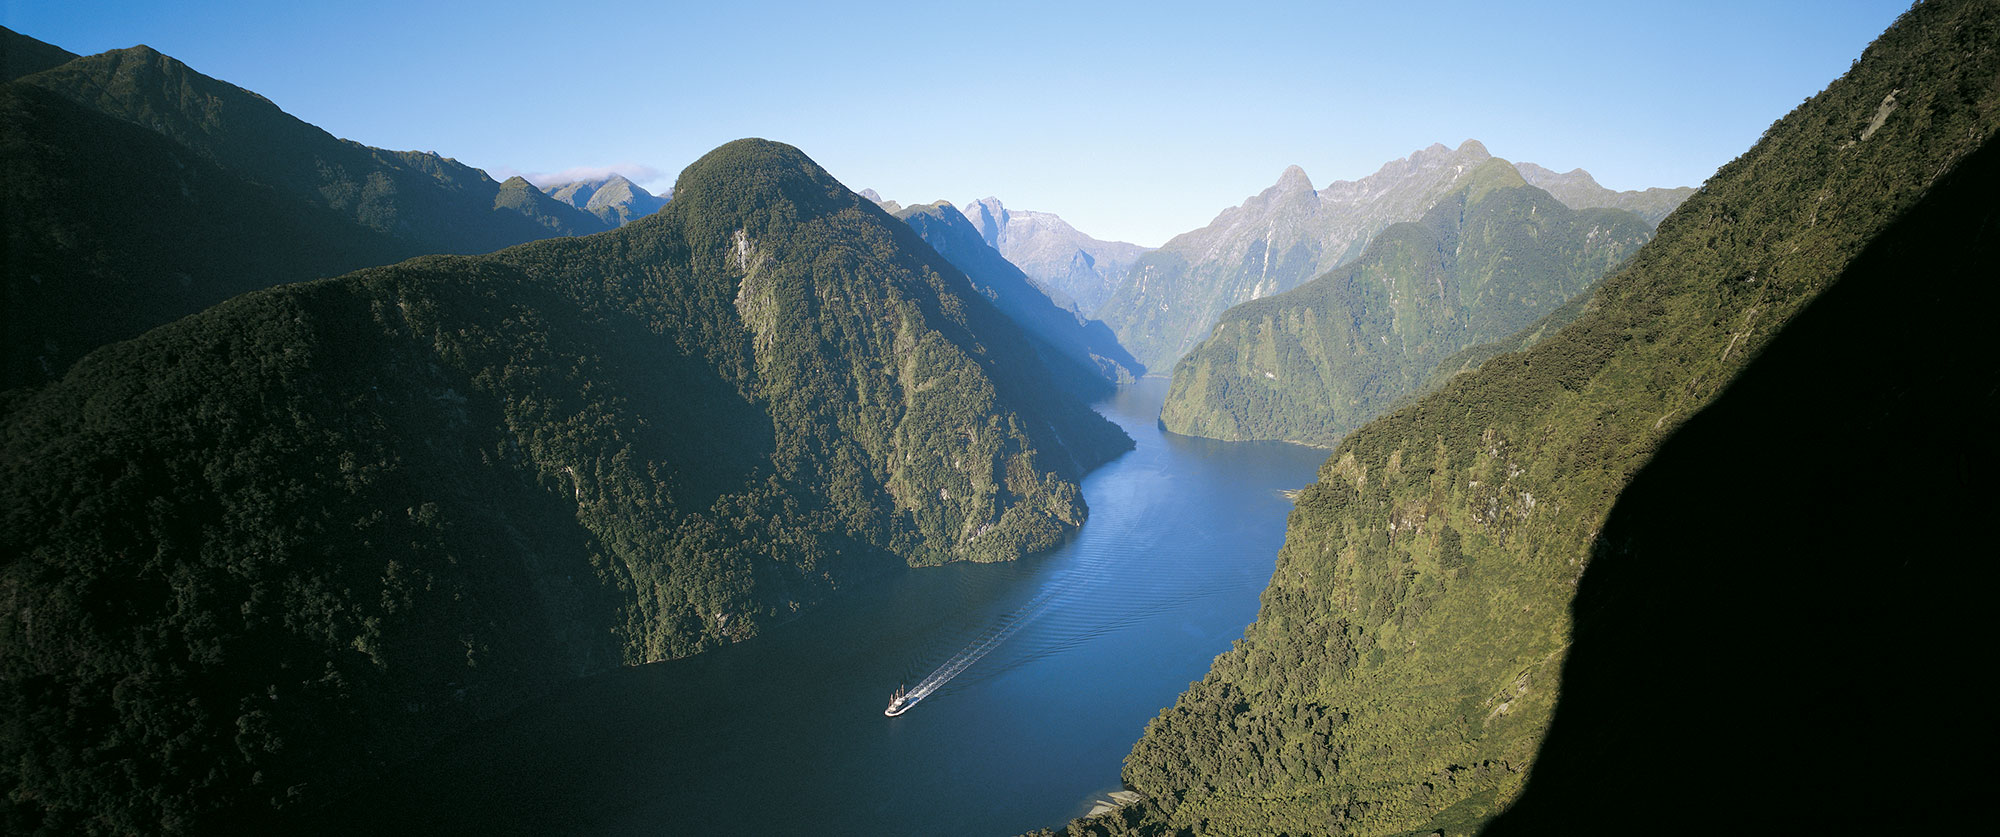 New Zealand Beach Resorts Package - Doubtful Sound